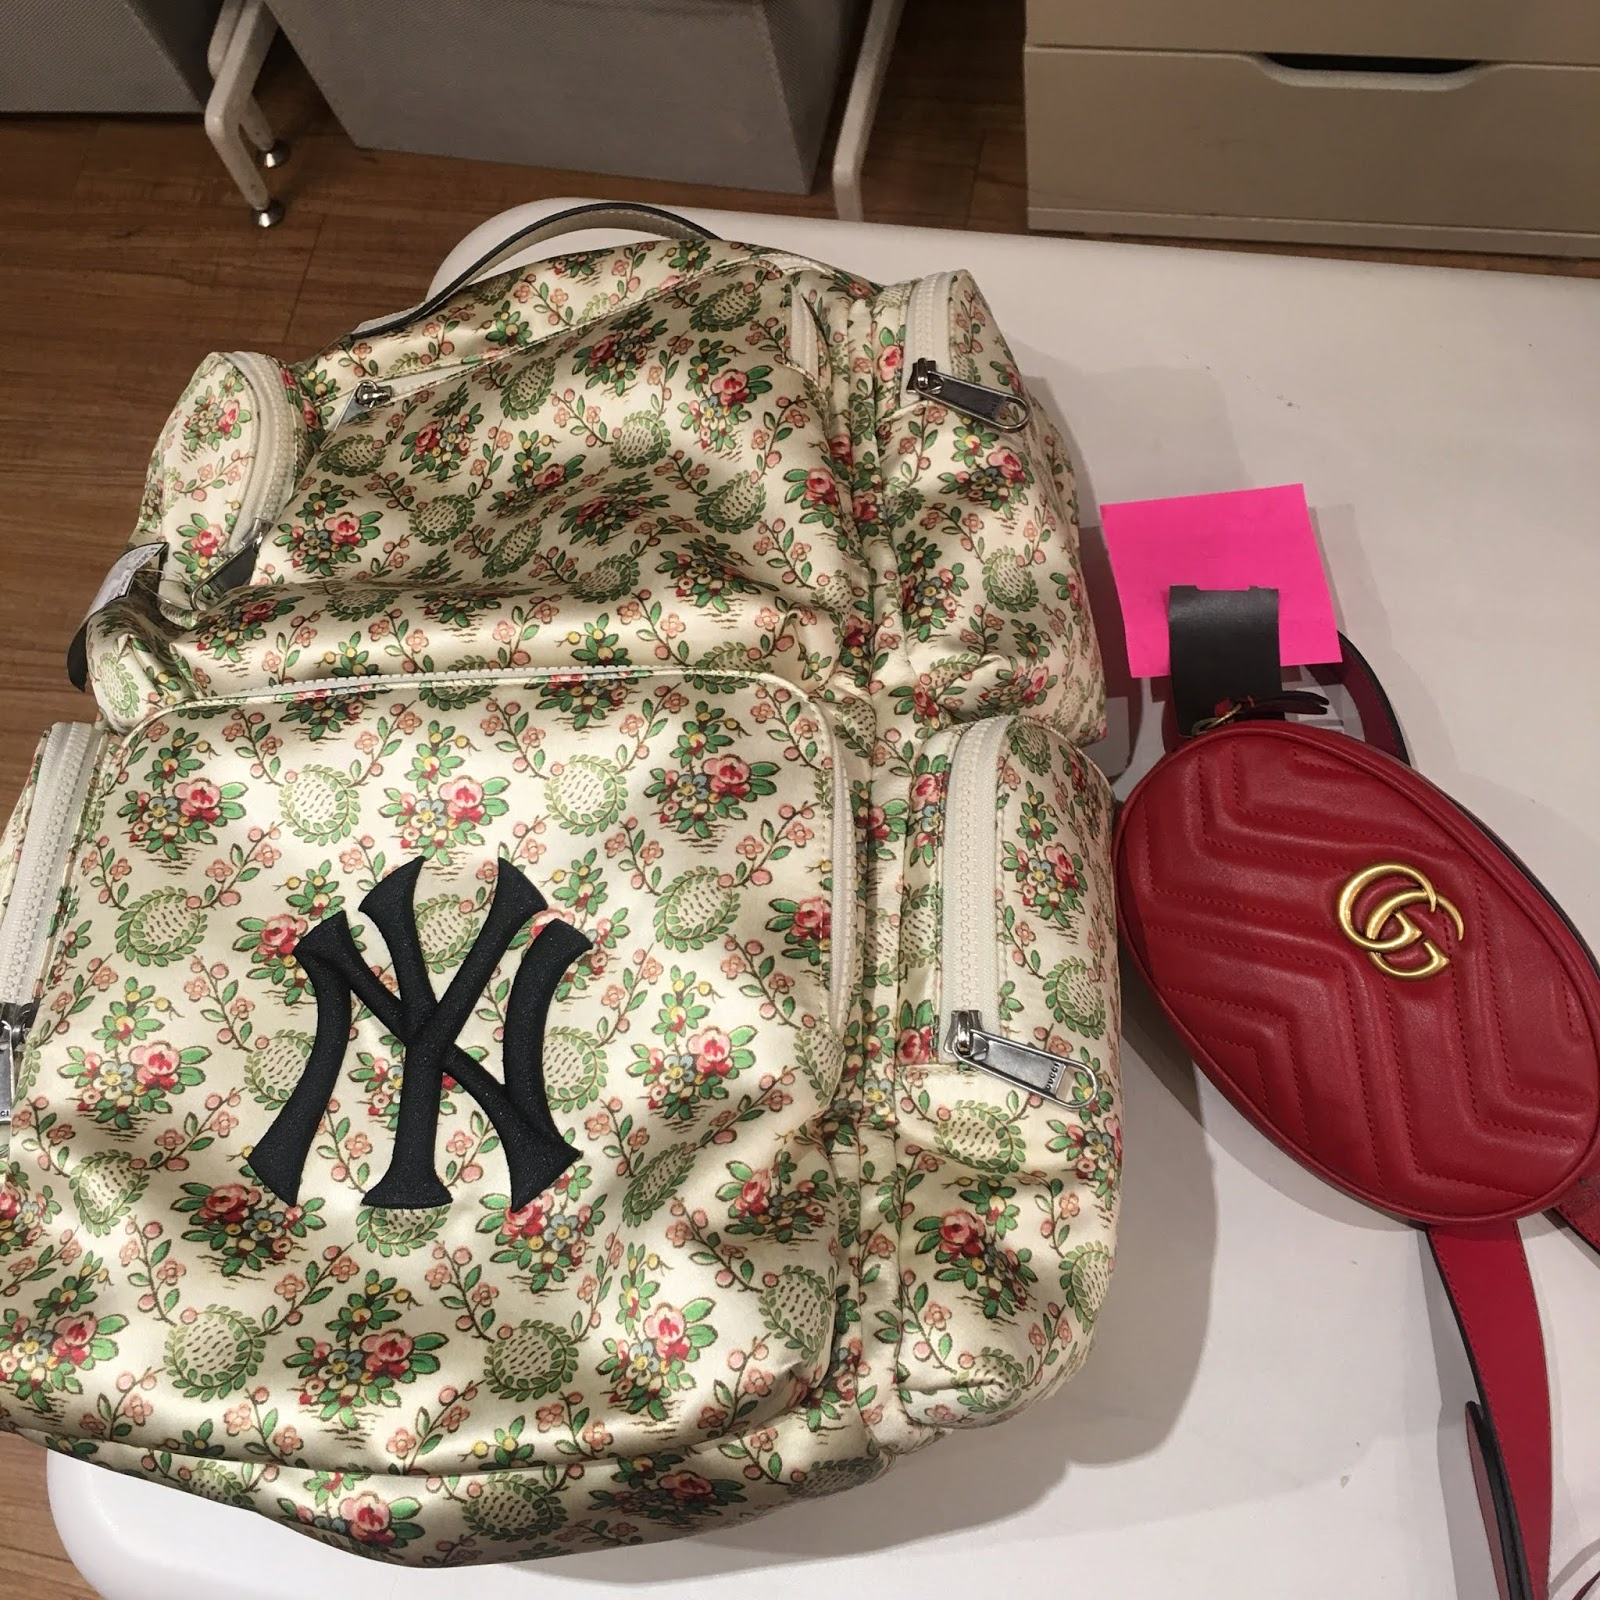 5820d4427d83 Left: Gucci 2018 Floral Satin Large Backpack W/ NY Yankees Patch